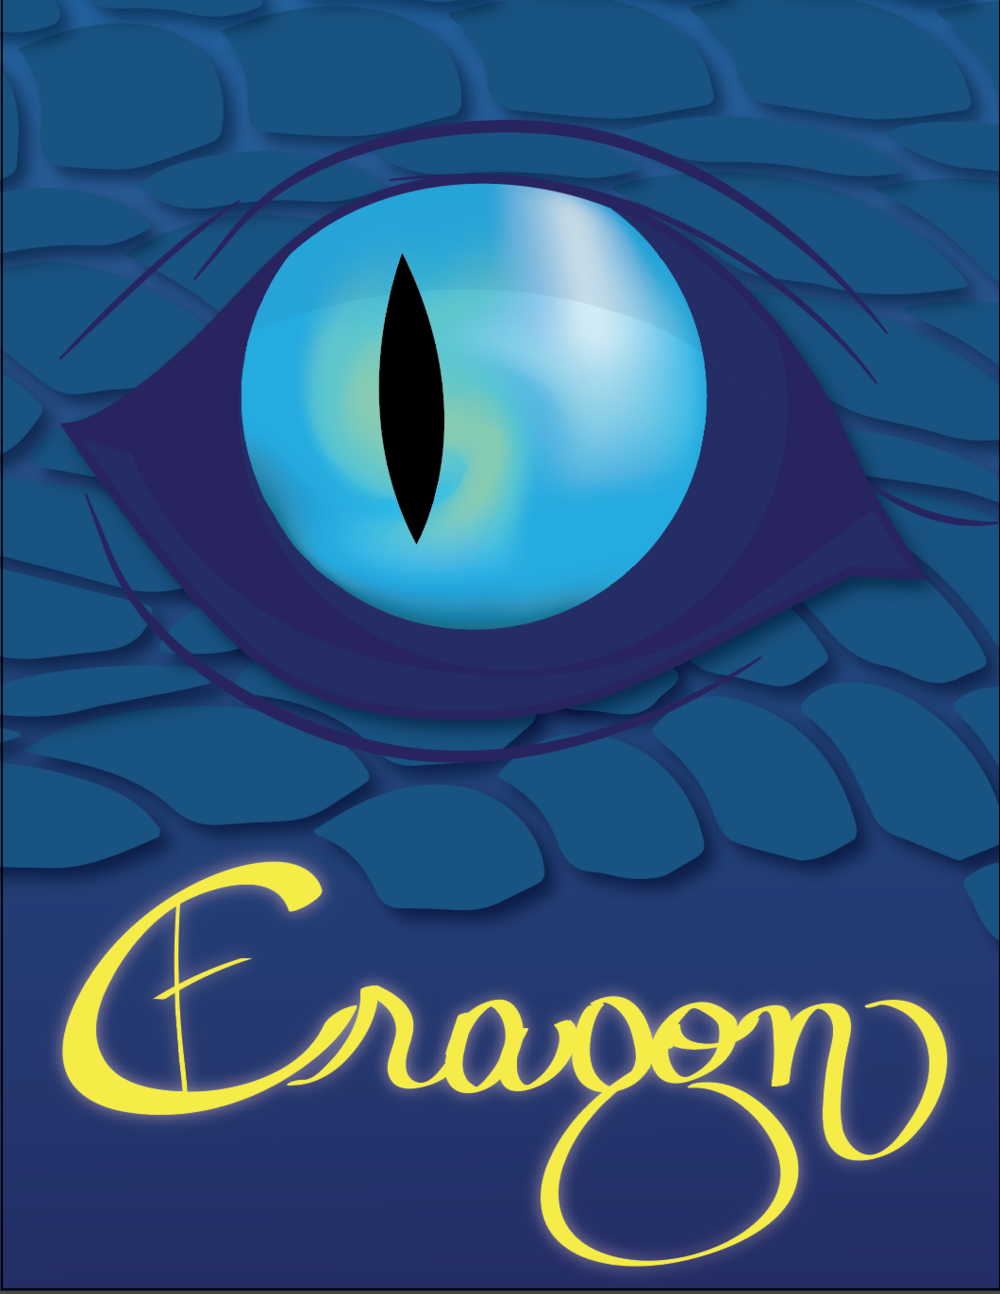 Type and Book Cover made on Adobe Illustrator